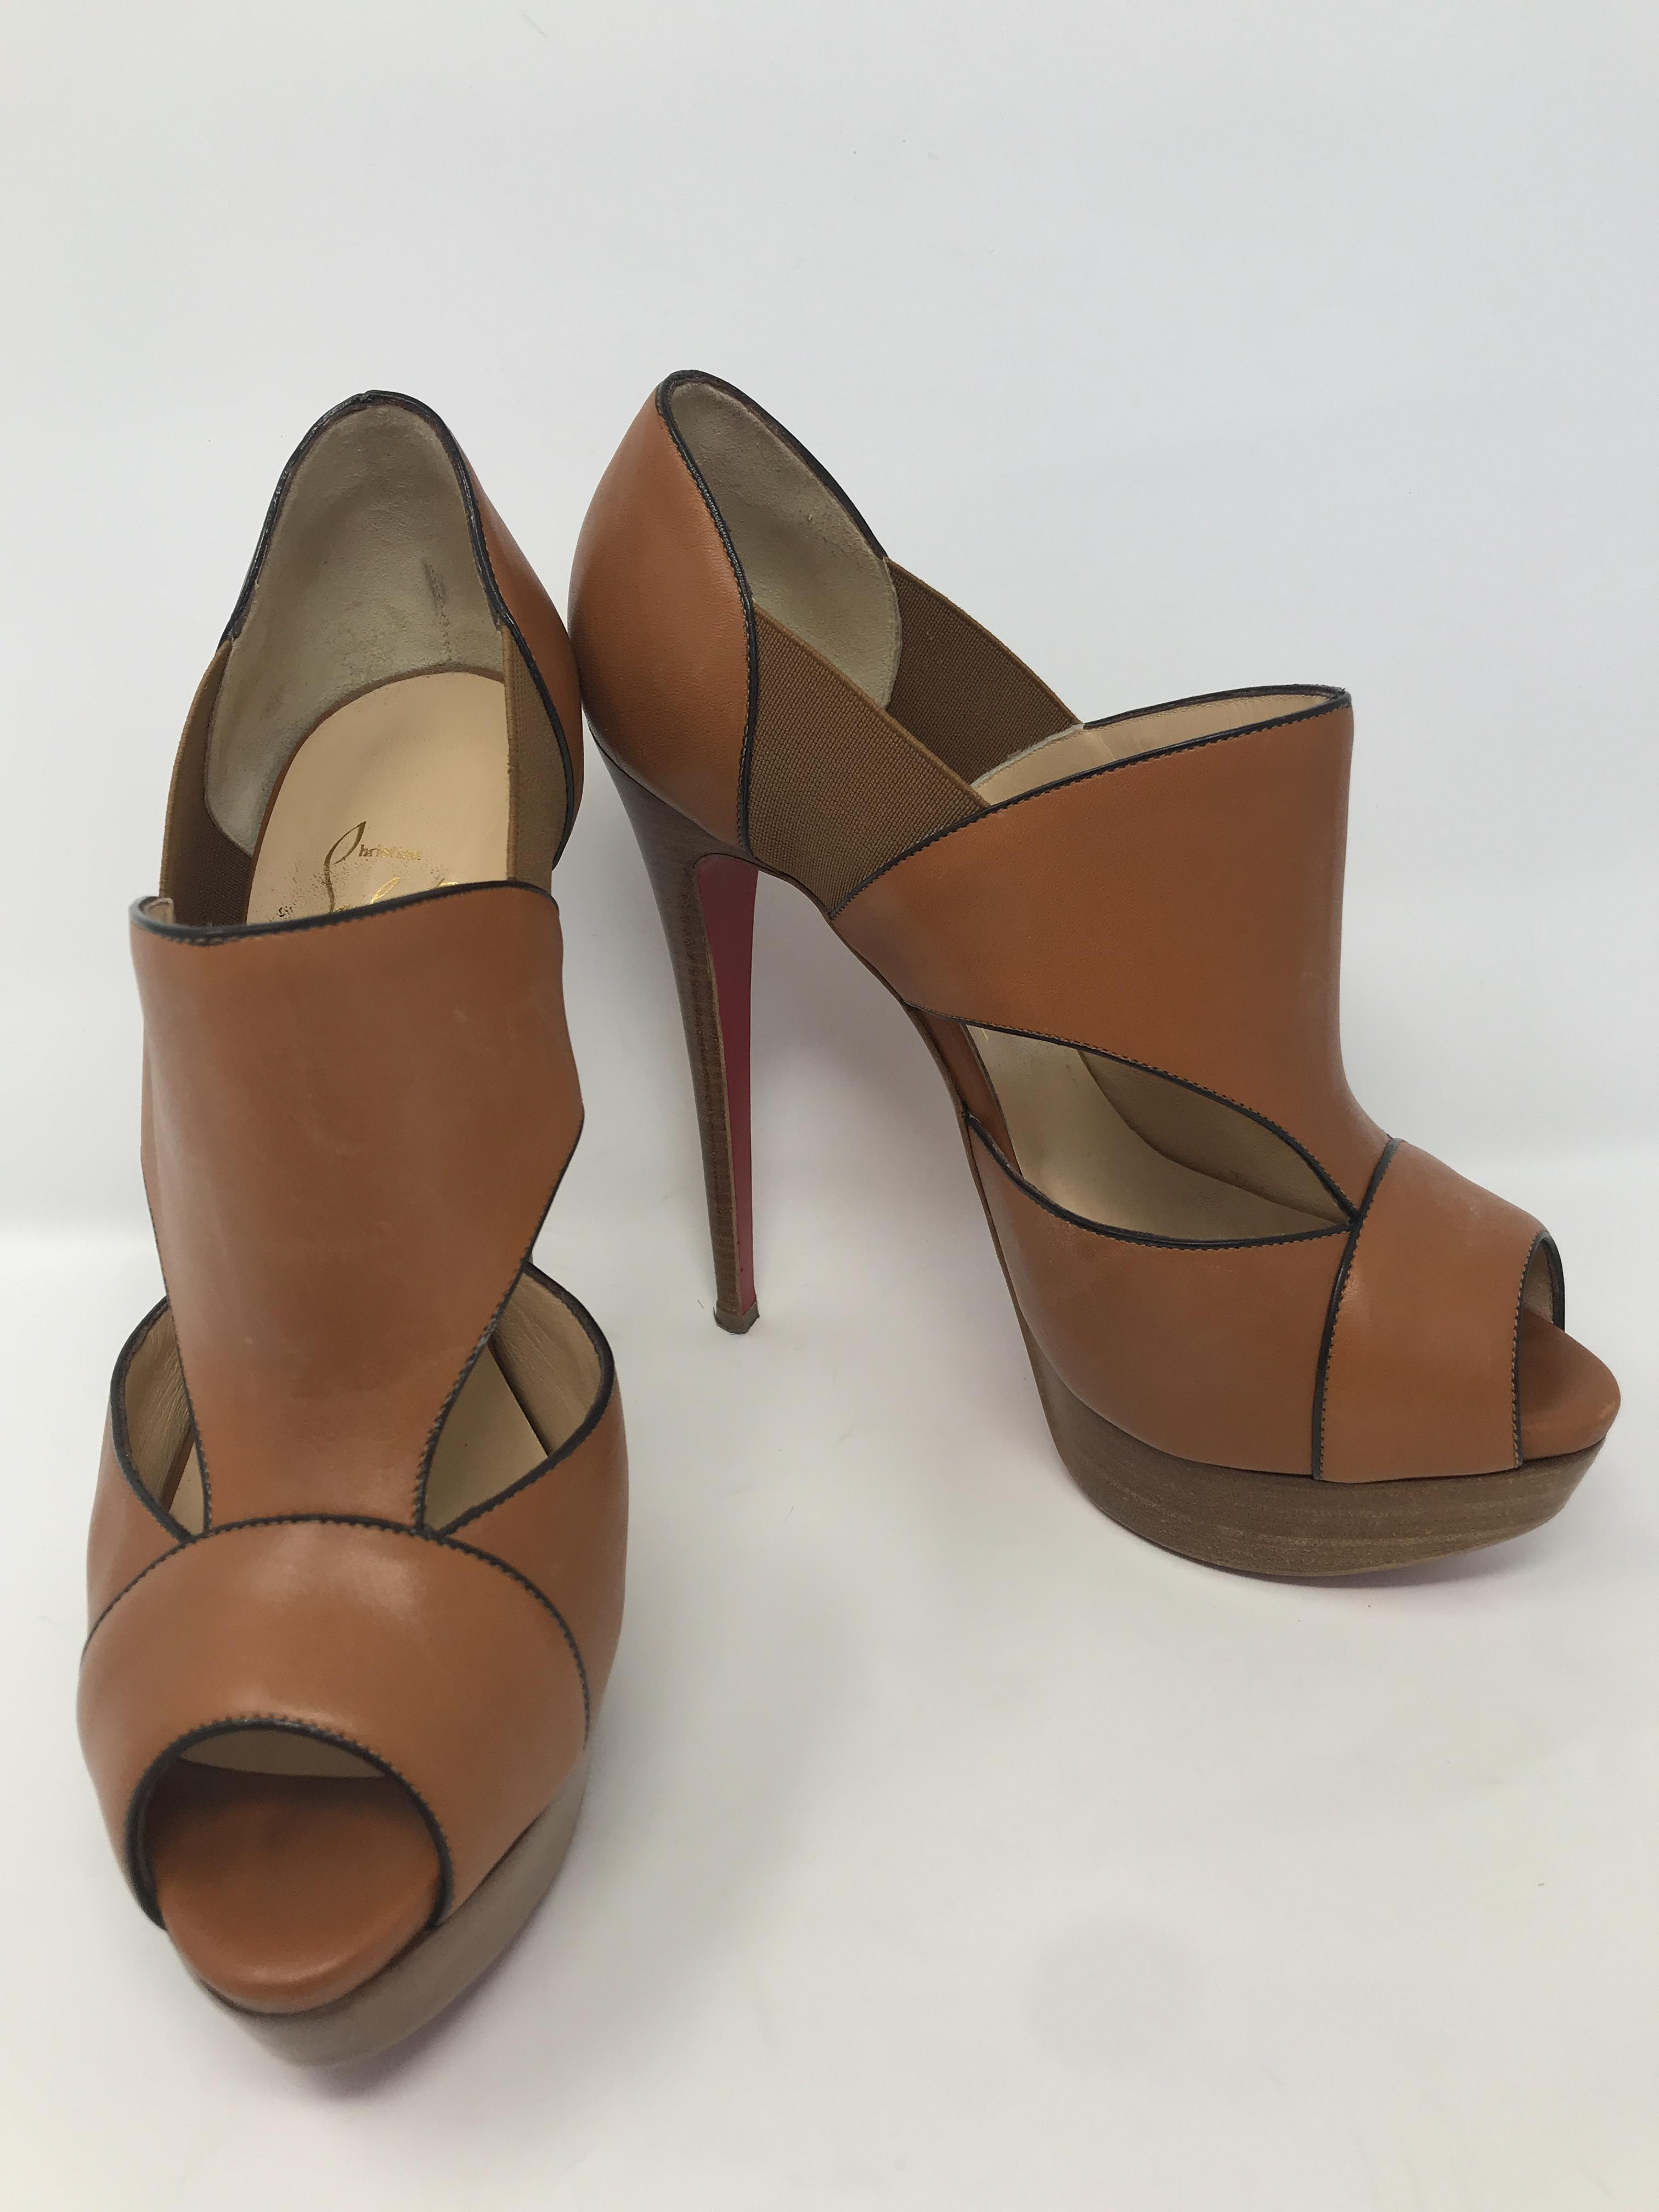 Louboutin leather AS Shoes Price: $298.99